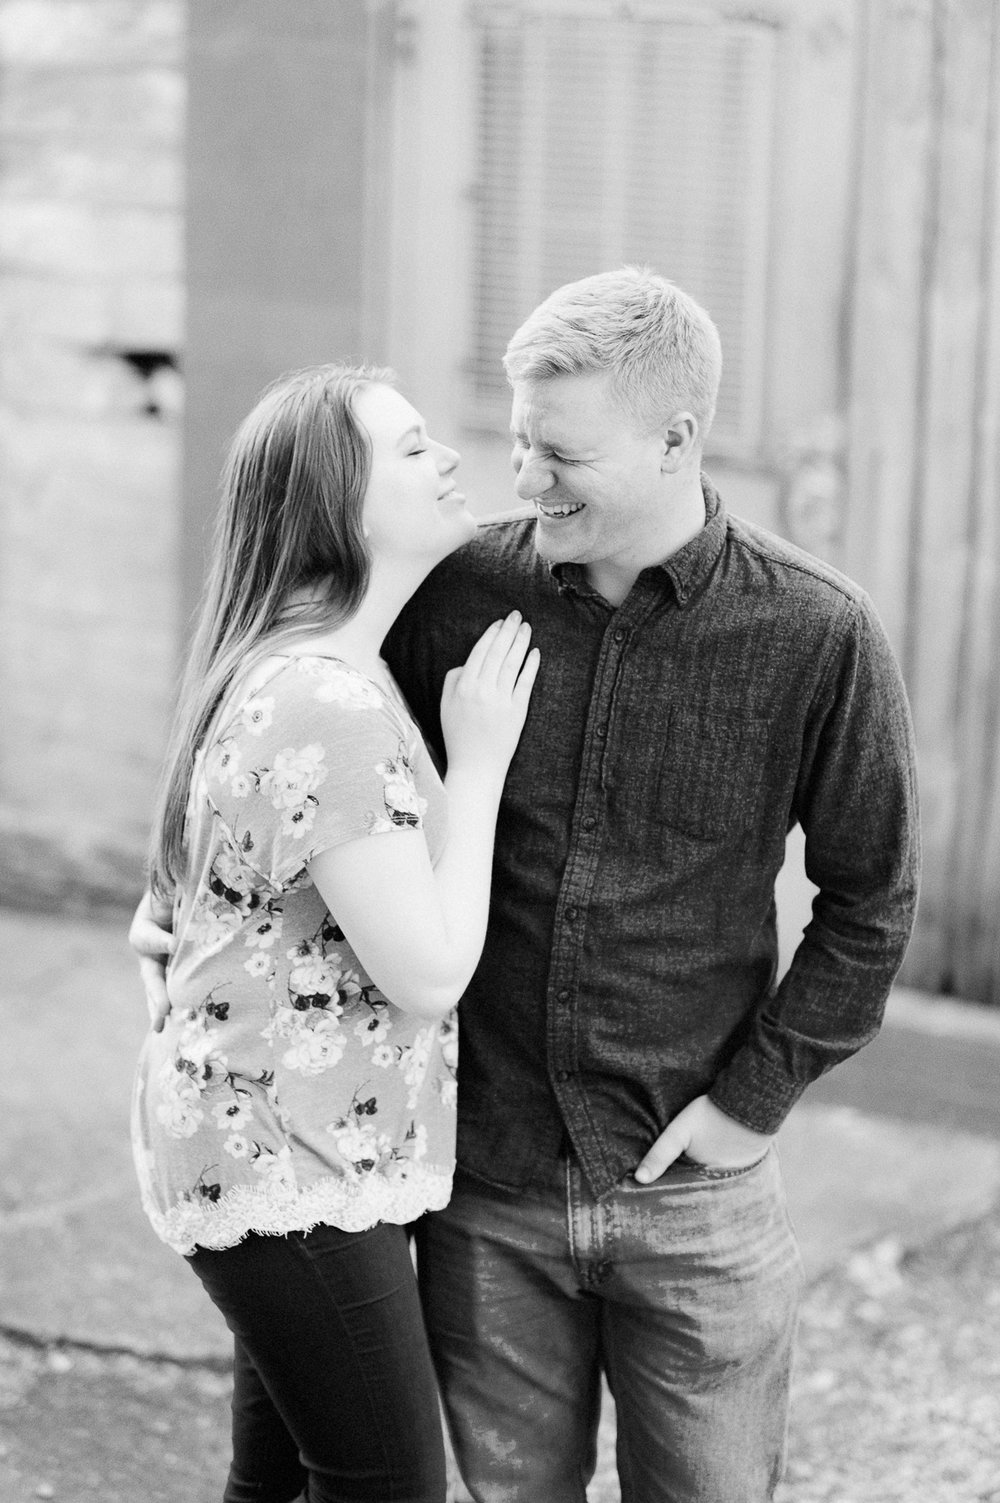 engagement_downtown_fredericksburg_virginiaweddingphotographer_youseephotography_ErinBrad (31).jpg